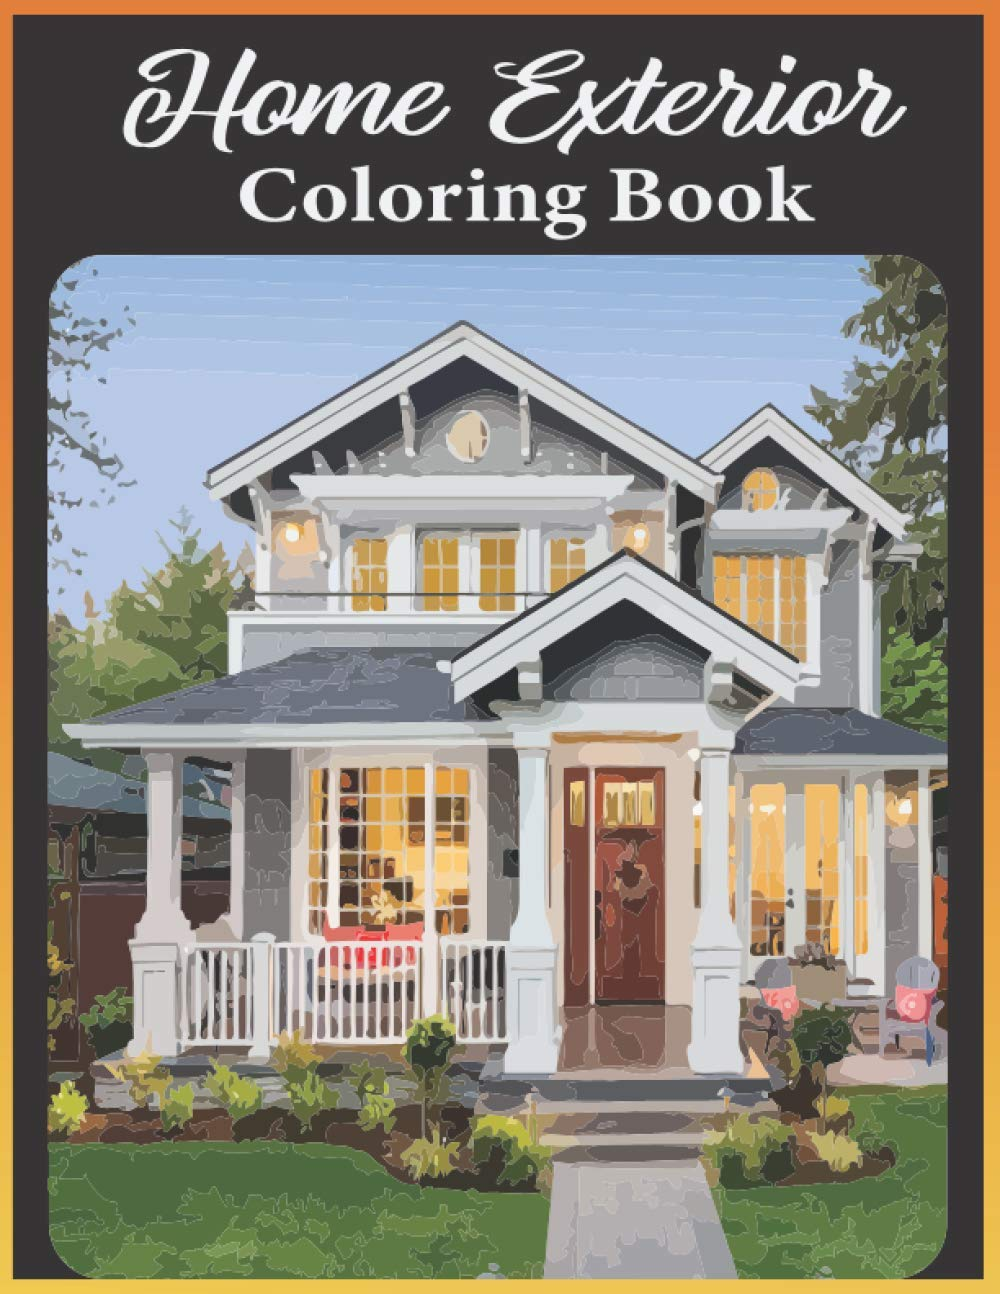 Home Exterior Coloring Book An Adult Exteriors With Beautiful Houses Cozy Cabins Luxurious Mansions Country Homes And More Publishing Tensec 9798568877219 Amazon Com Books